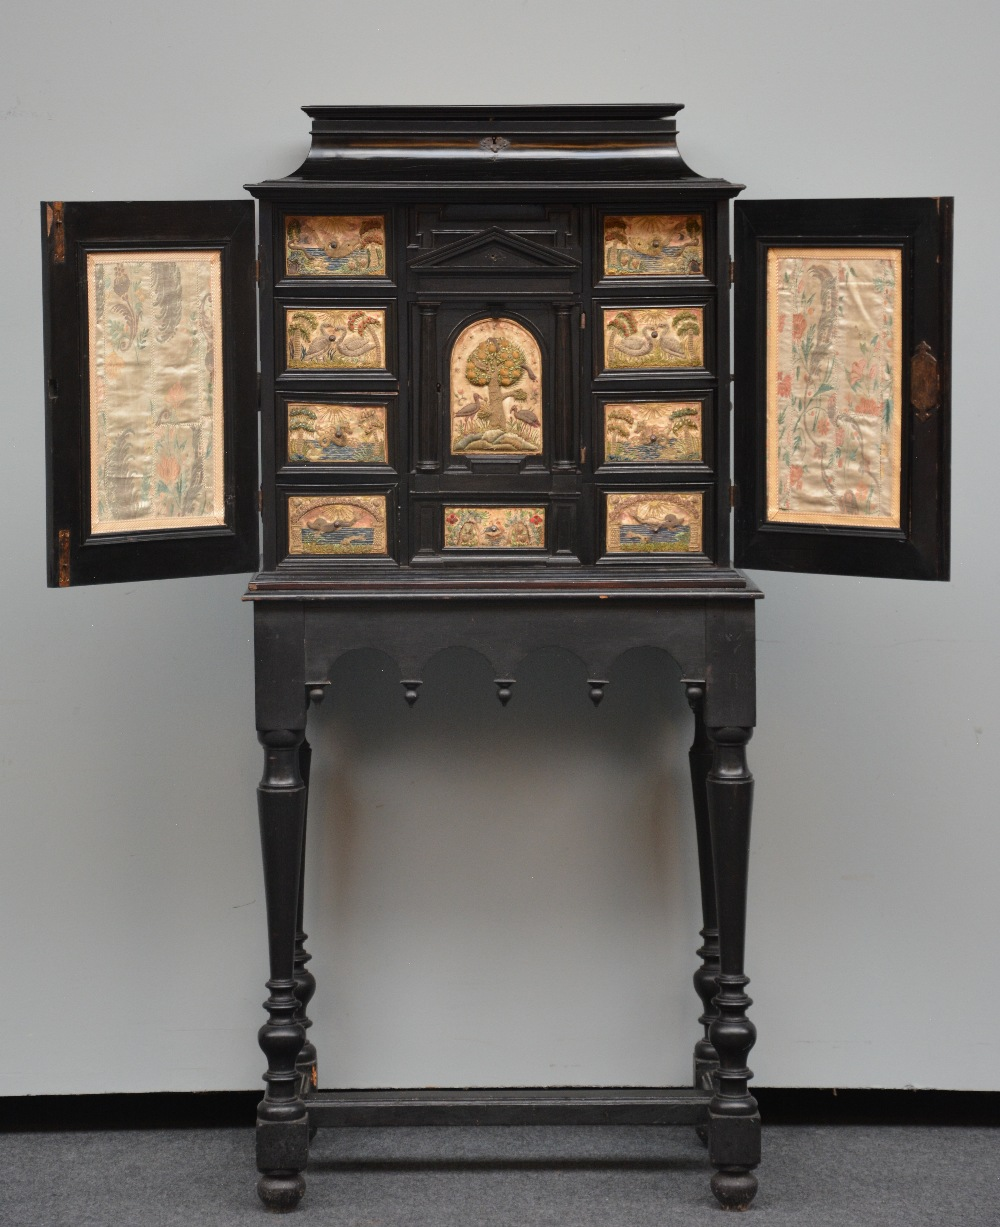 An exceptional 17thC Flemish ebony and rosewood cabinet-on-stand, silk embroidered inside, the